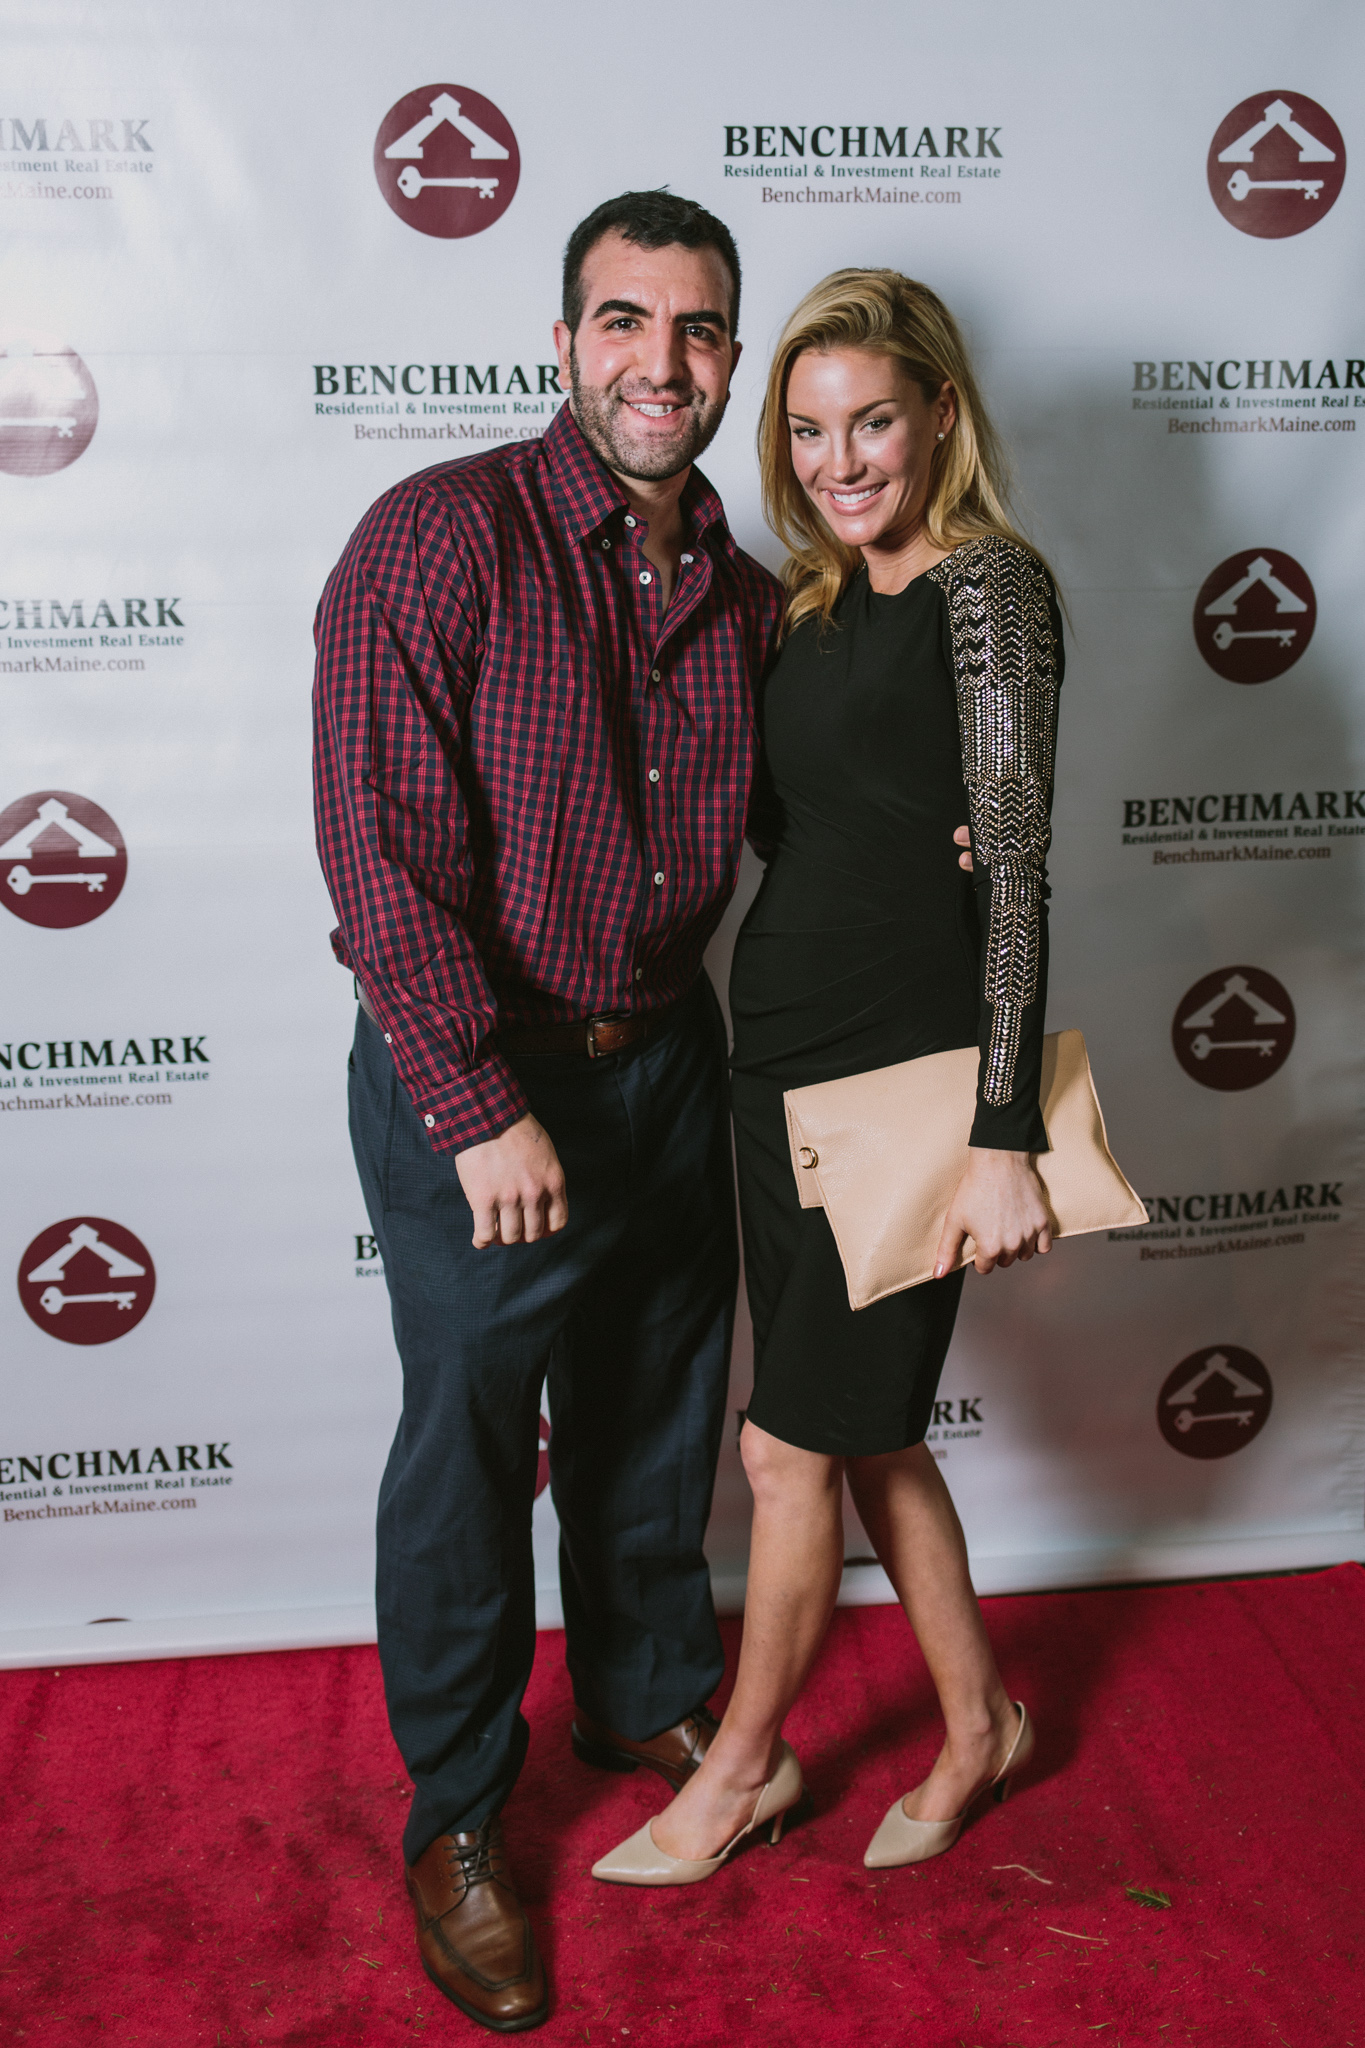 Benchmark_Holiday_Party_SR-070.jpg